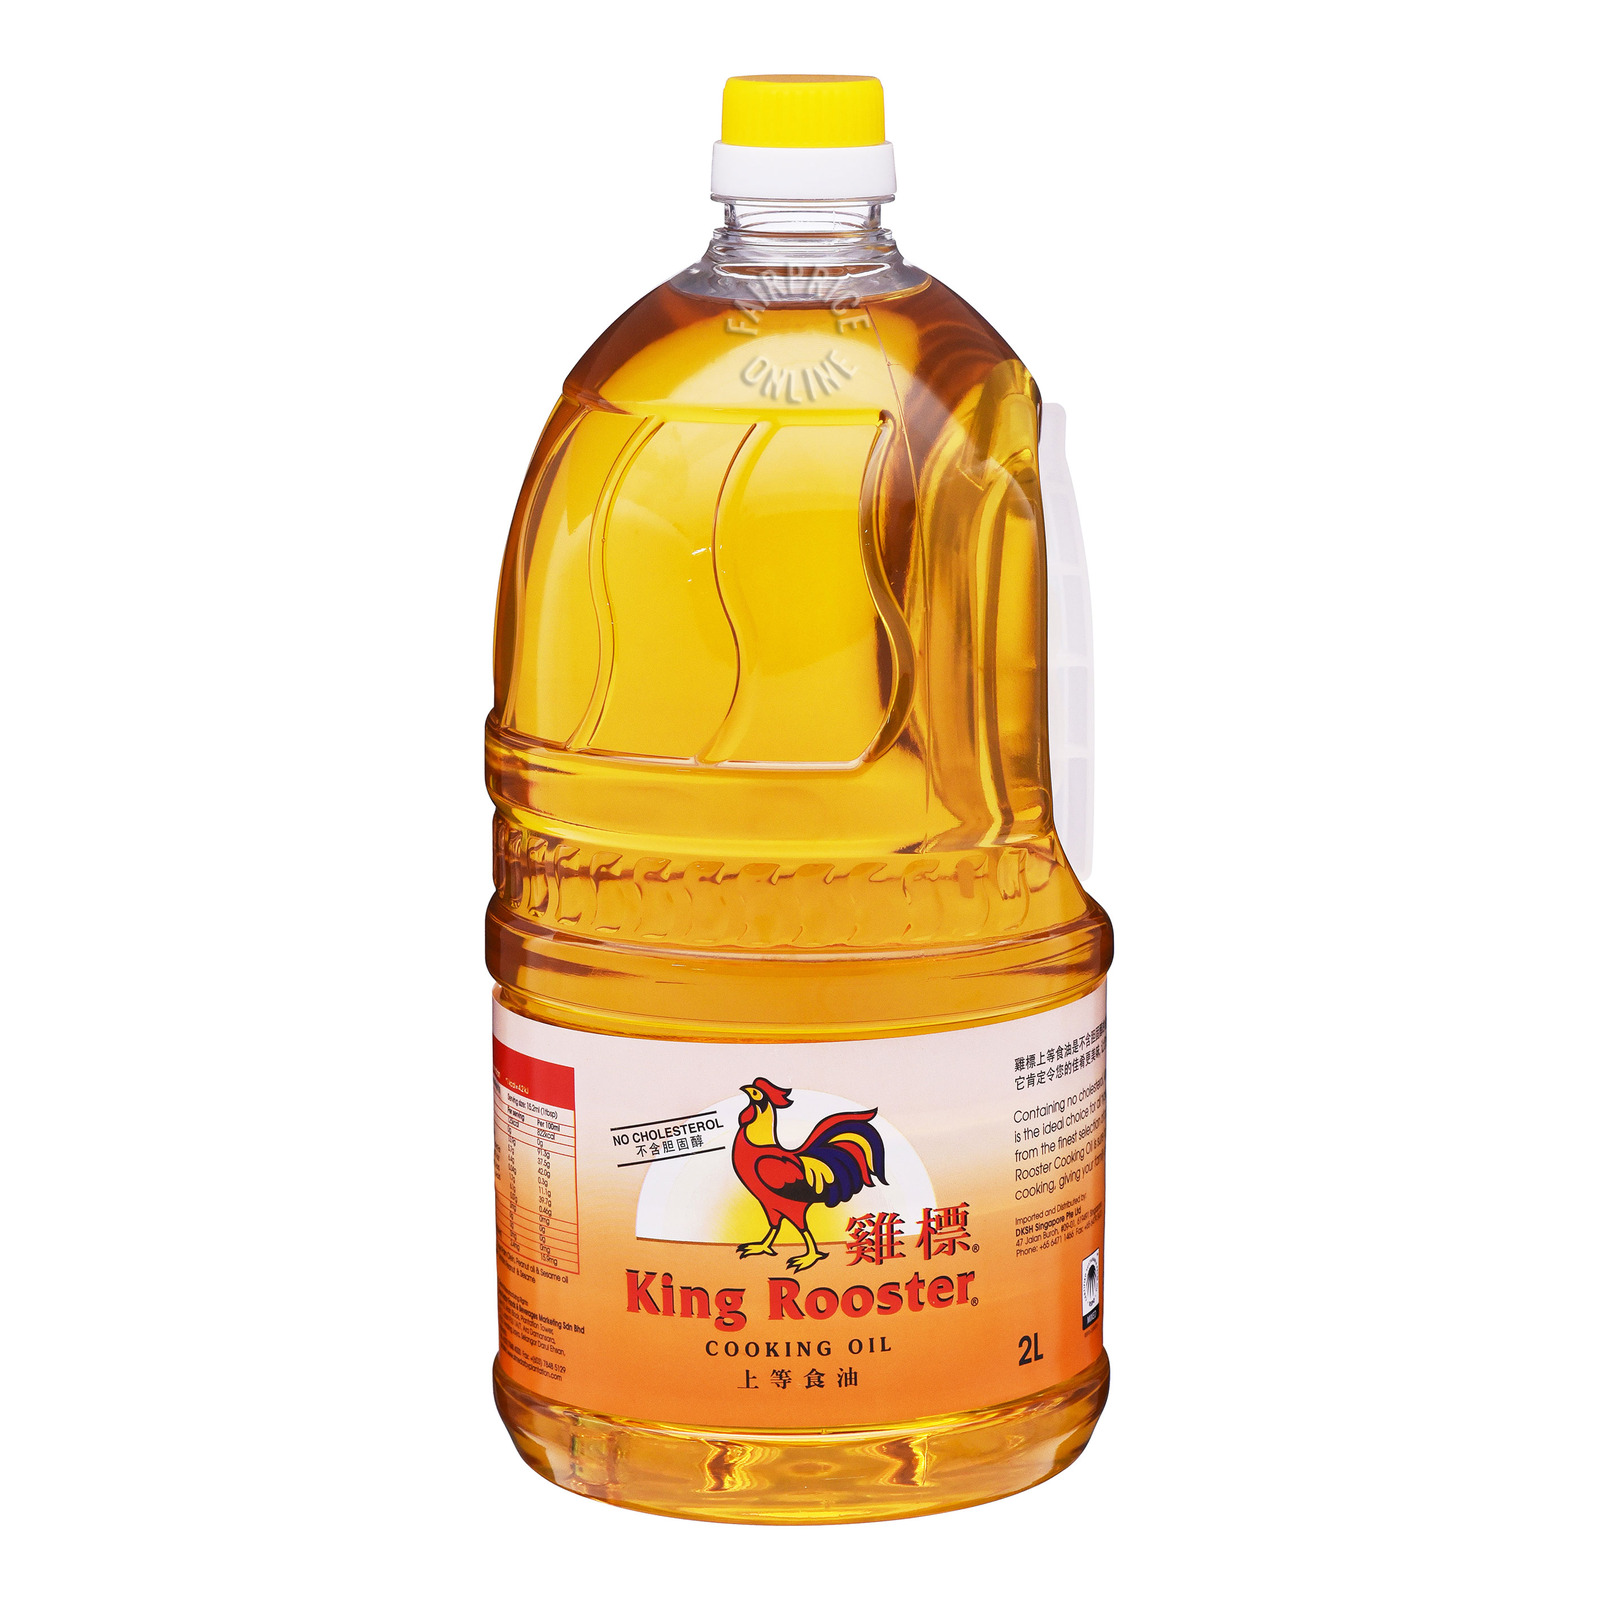 King Rooster Cooking Oil 2L